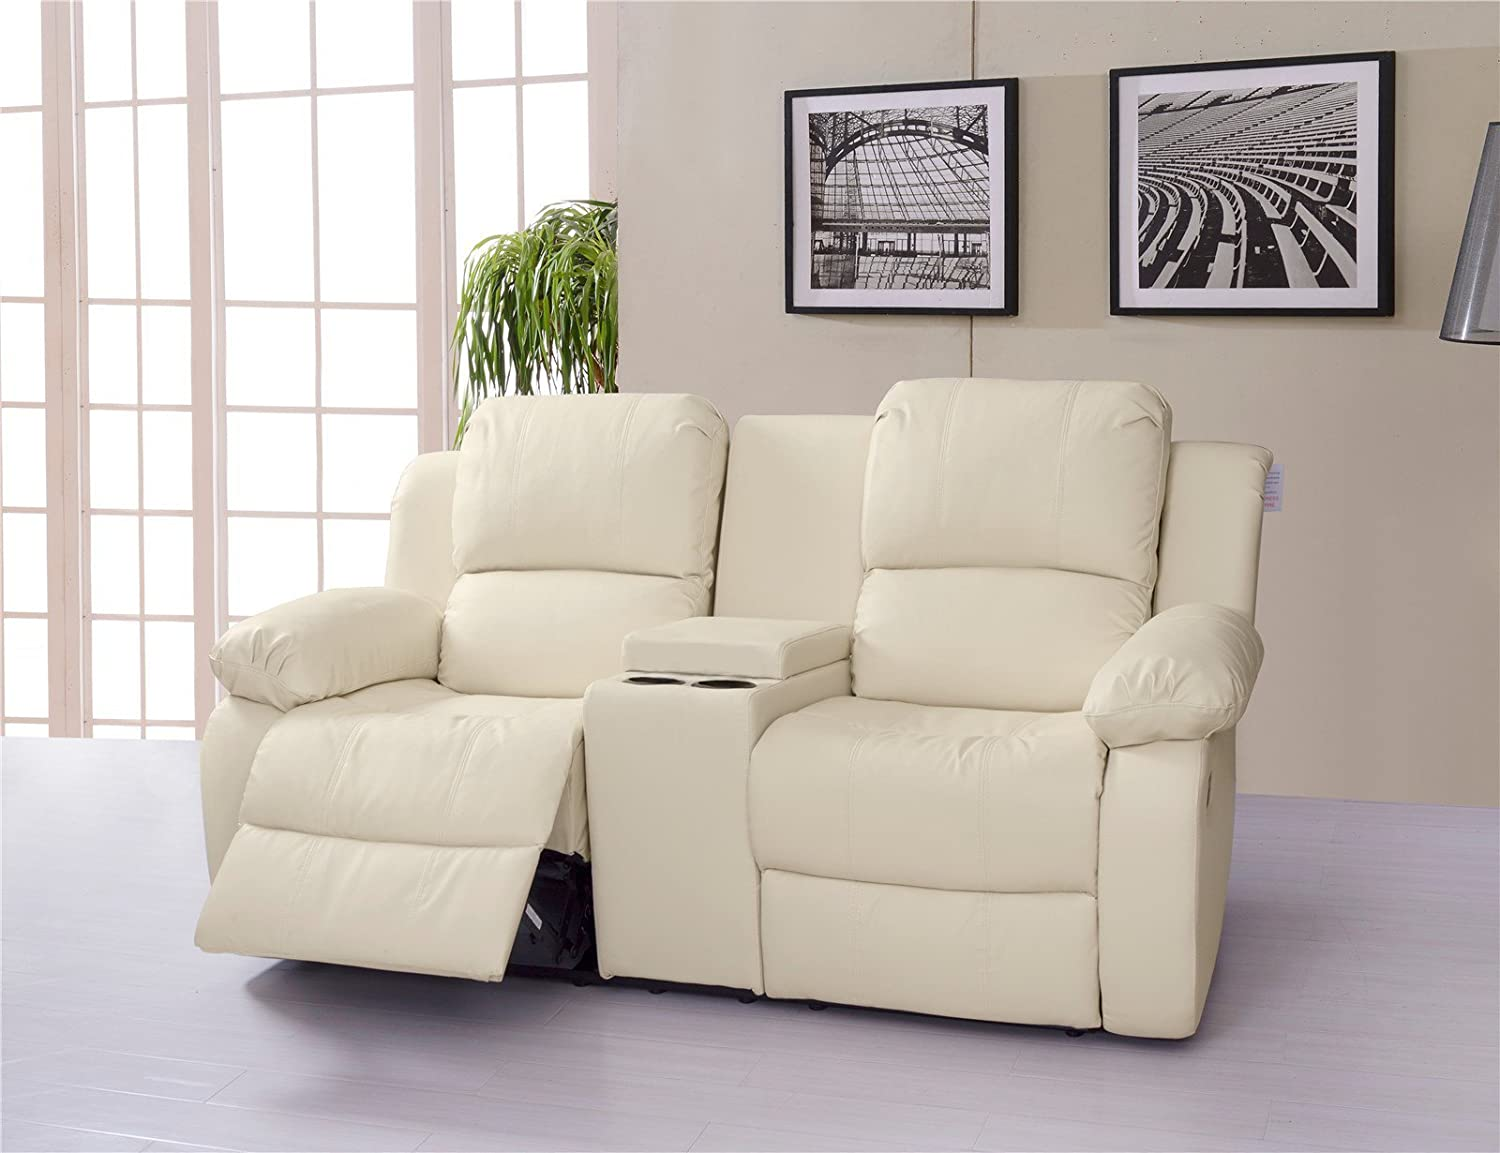 Lovesofas Valencia 2 Seater Bonded Leather Recliner Sofa With Drinking  Console   Cream: Amazon.co.uk: Kitchen U0026 Home